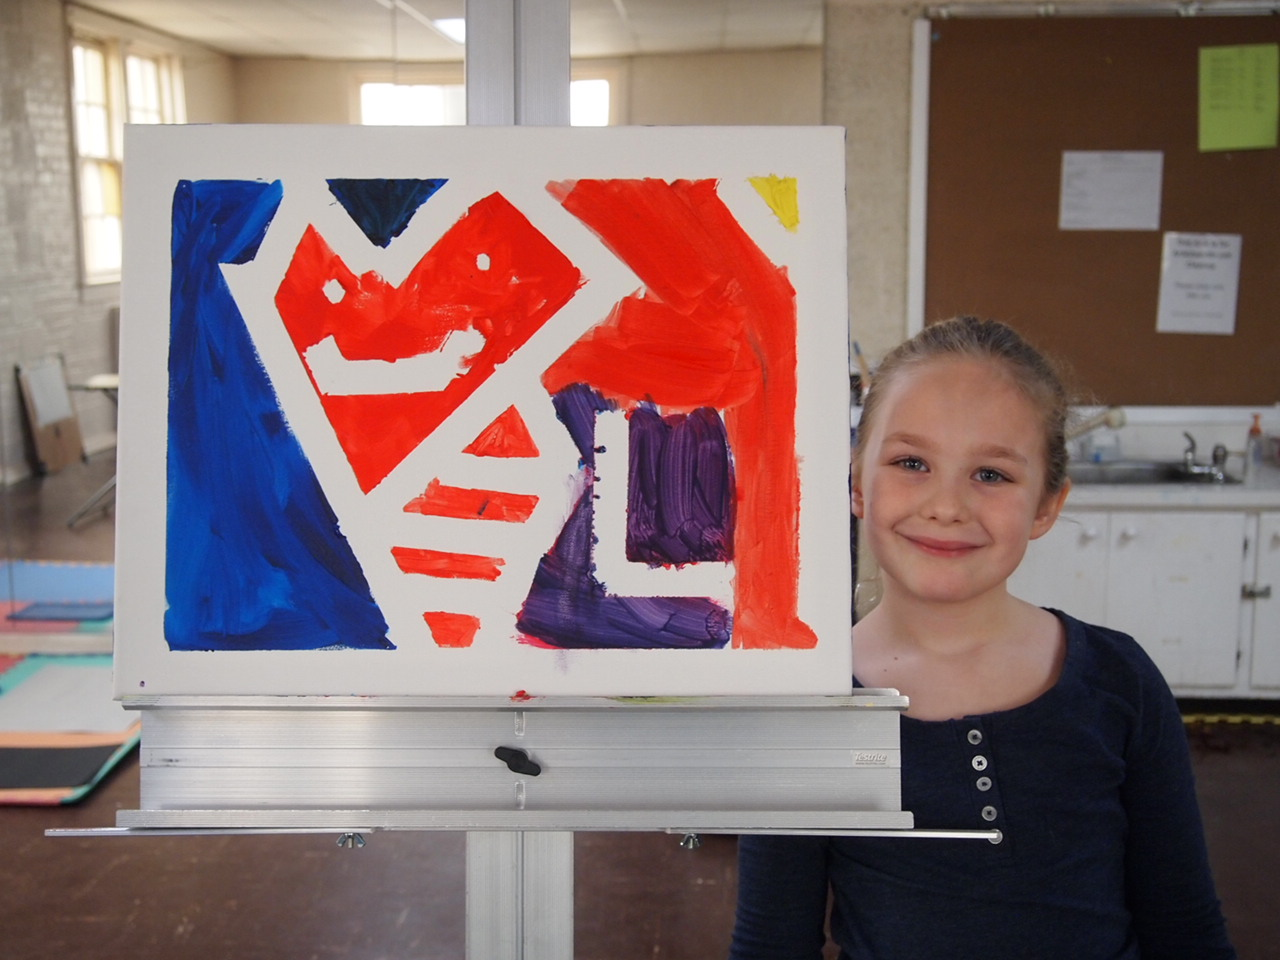 Abstract Painting with Meaningful Colors